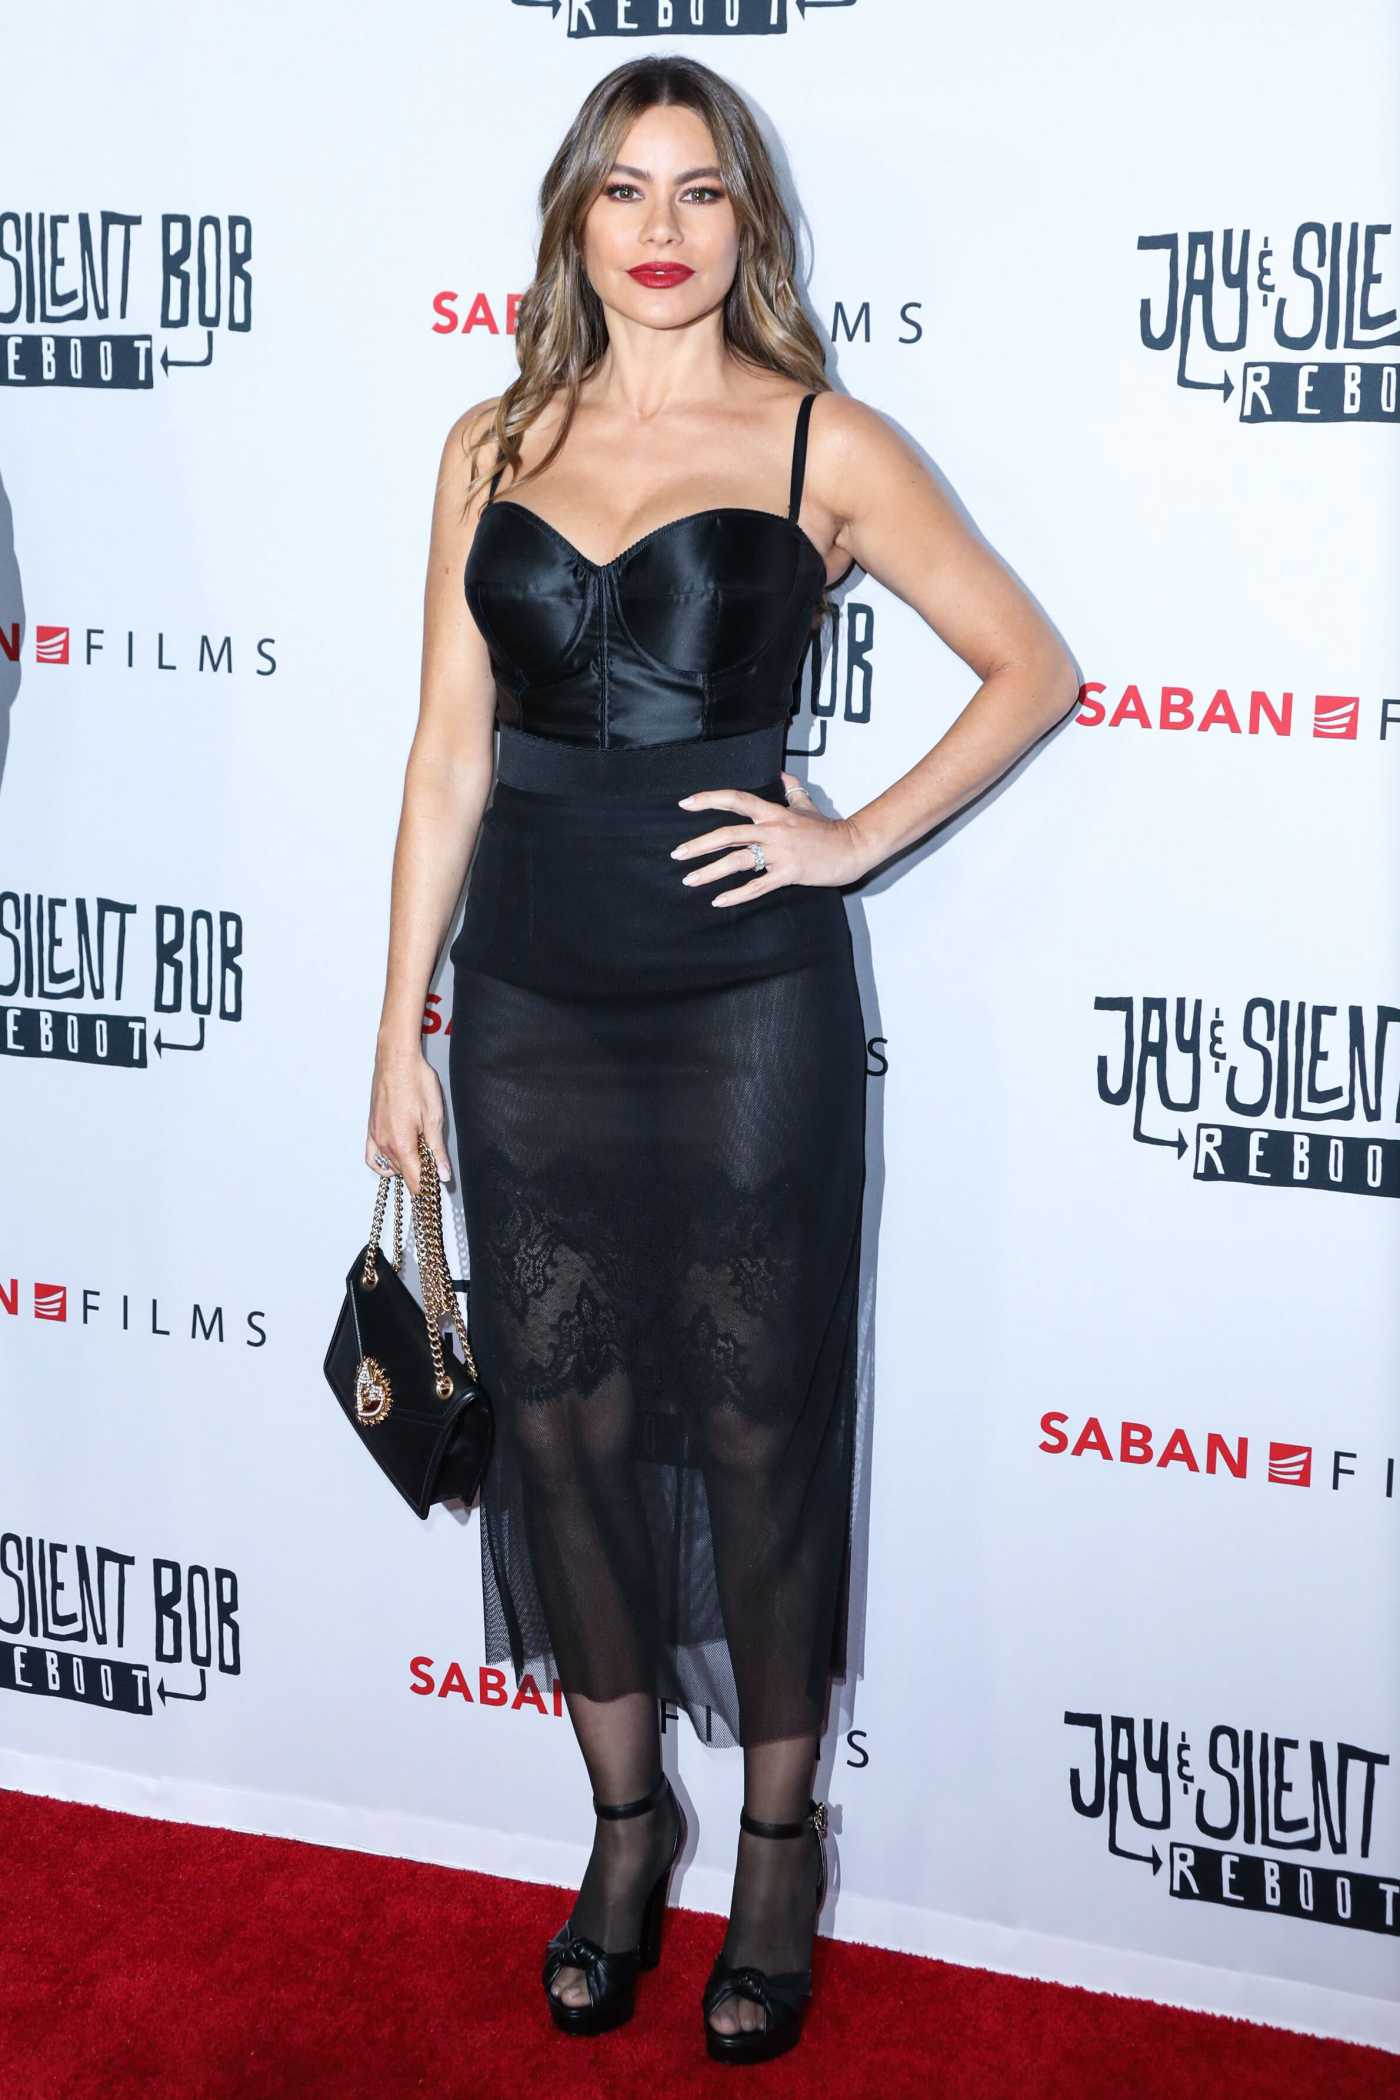 Sofia Vergara in a Black Dress Attends the Jay and Silent Bob Reboot Premiere at TCL Chinese Theatre in Hollywood 10/14/2019